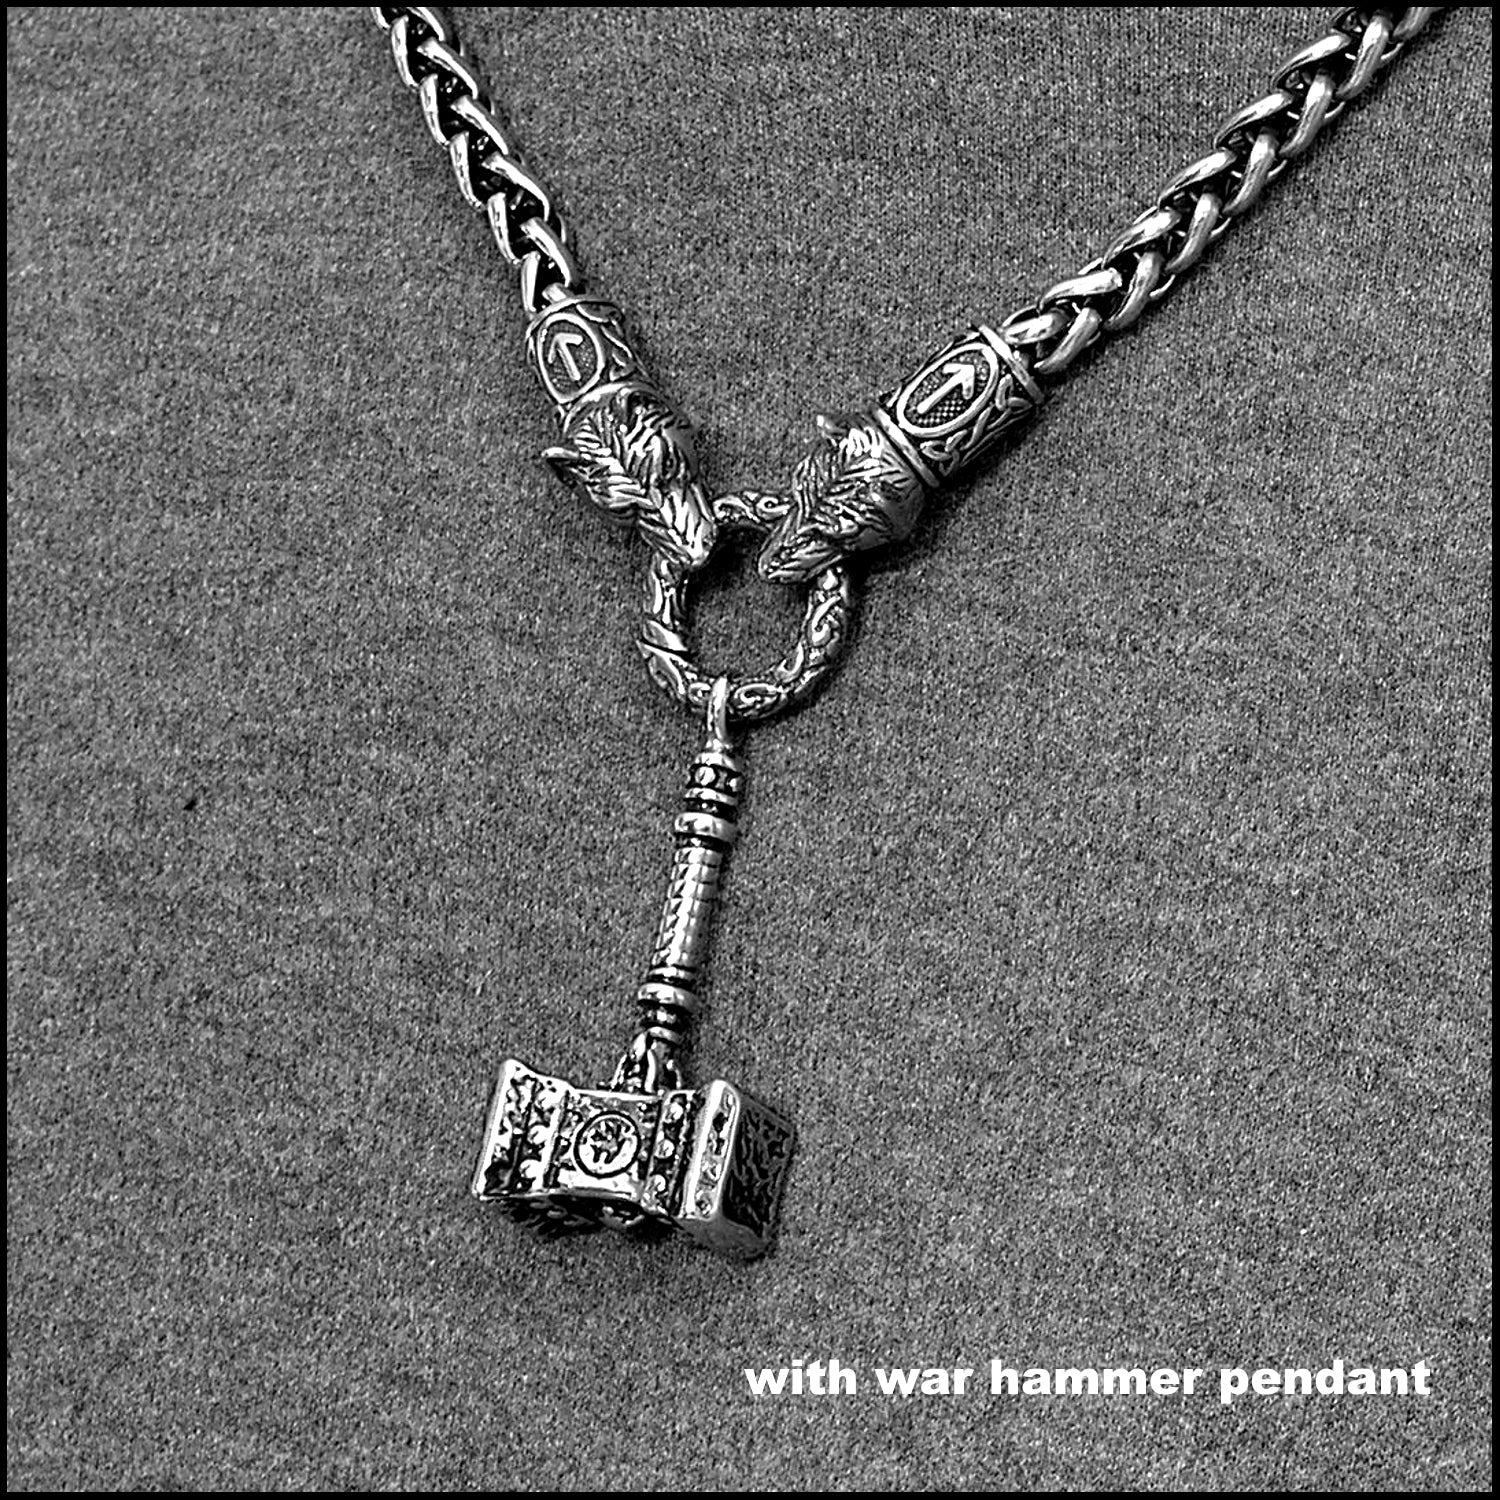 Wolf Warrior Necklace Featuring Antique Viking Braid Chain with Ancient Design War Hammer Pendant